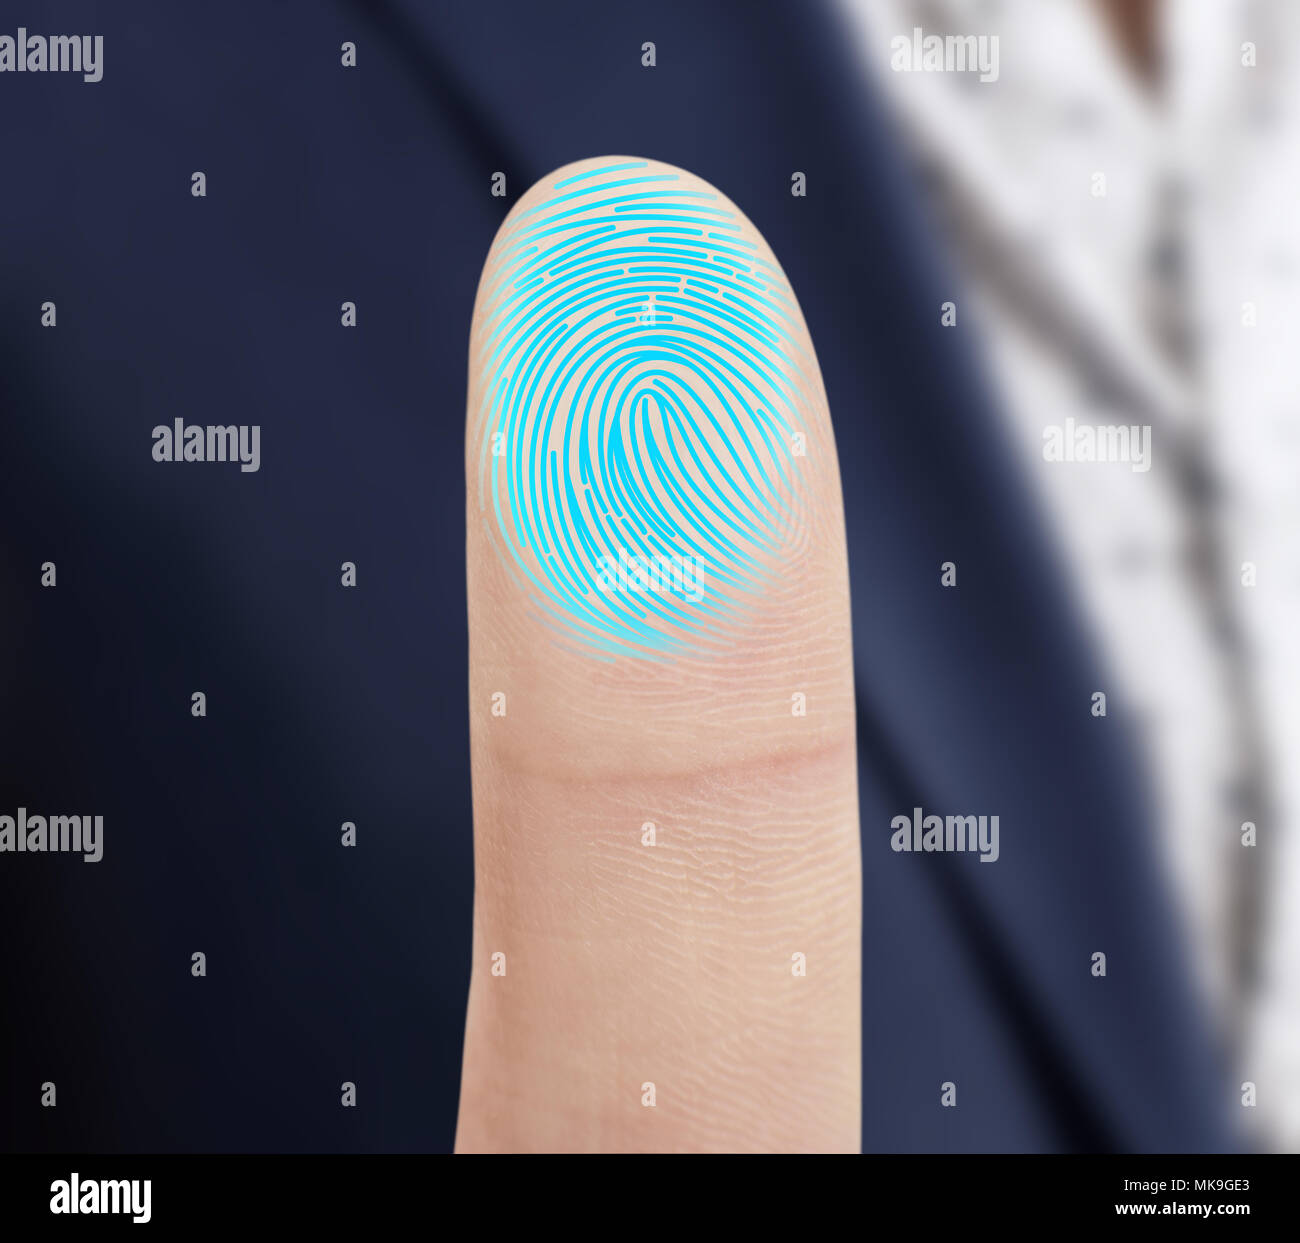 Finger Print Scan For Security System Stock Photos & Finger